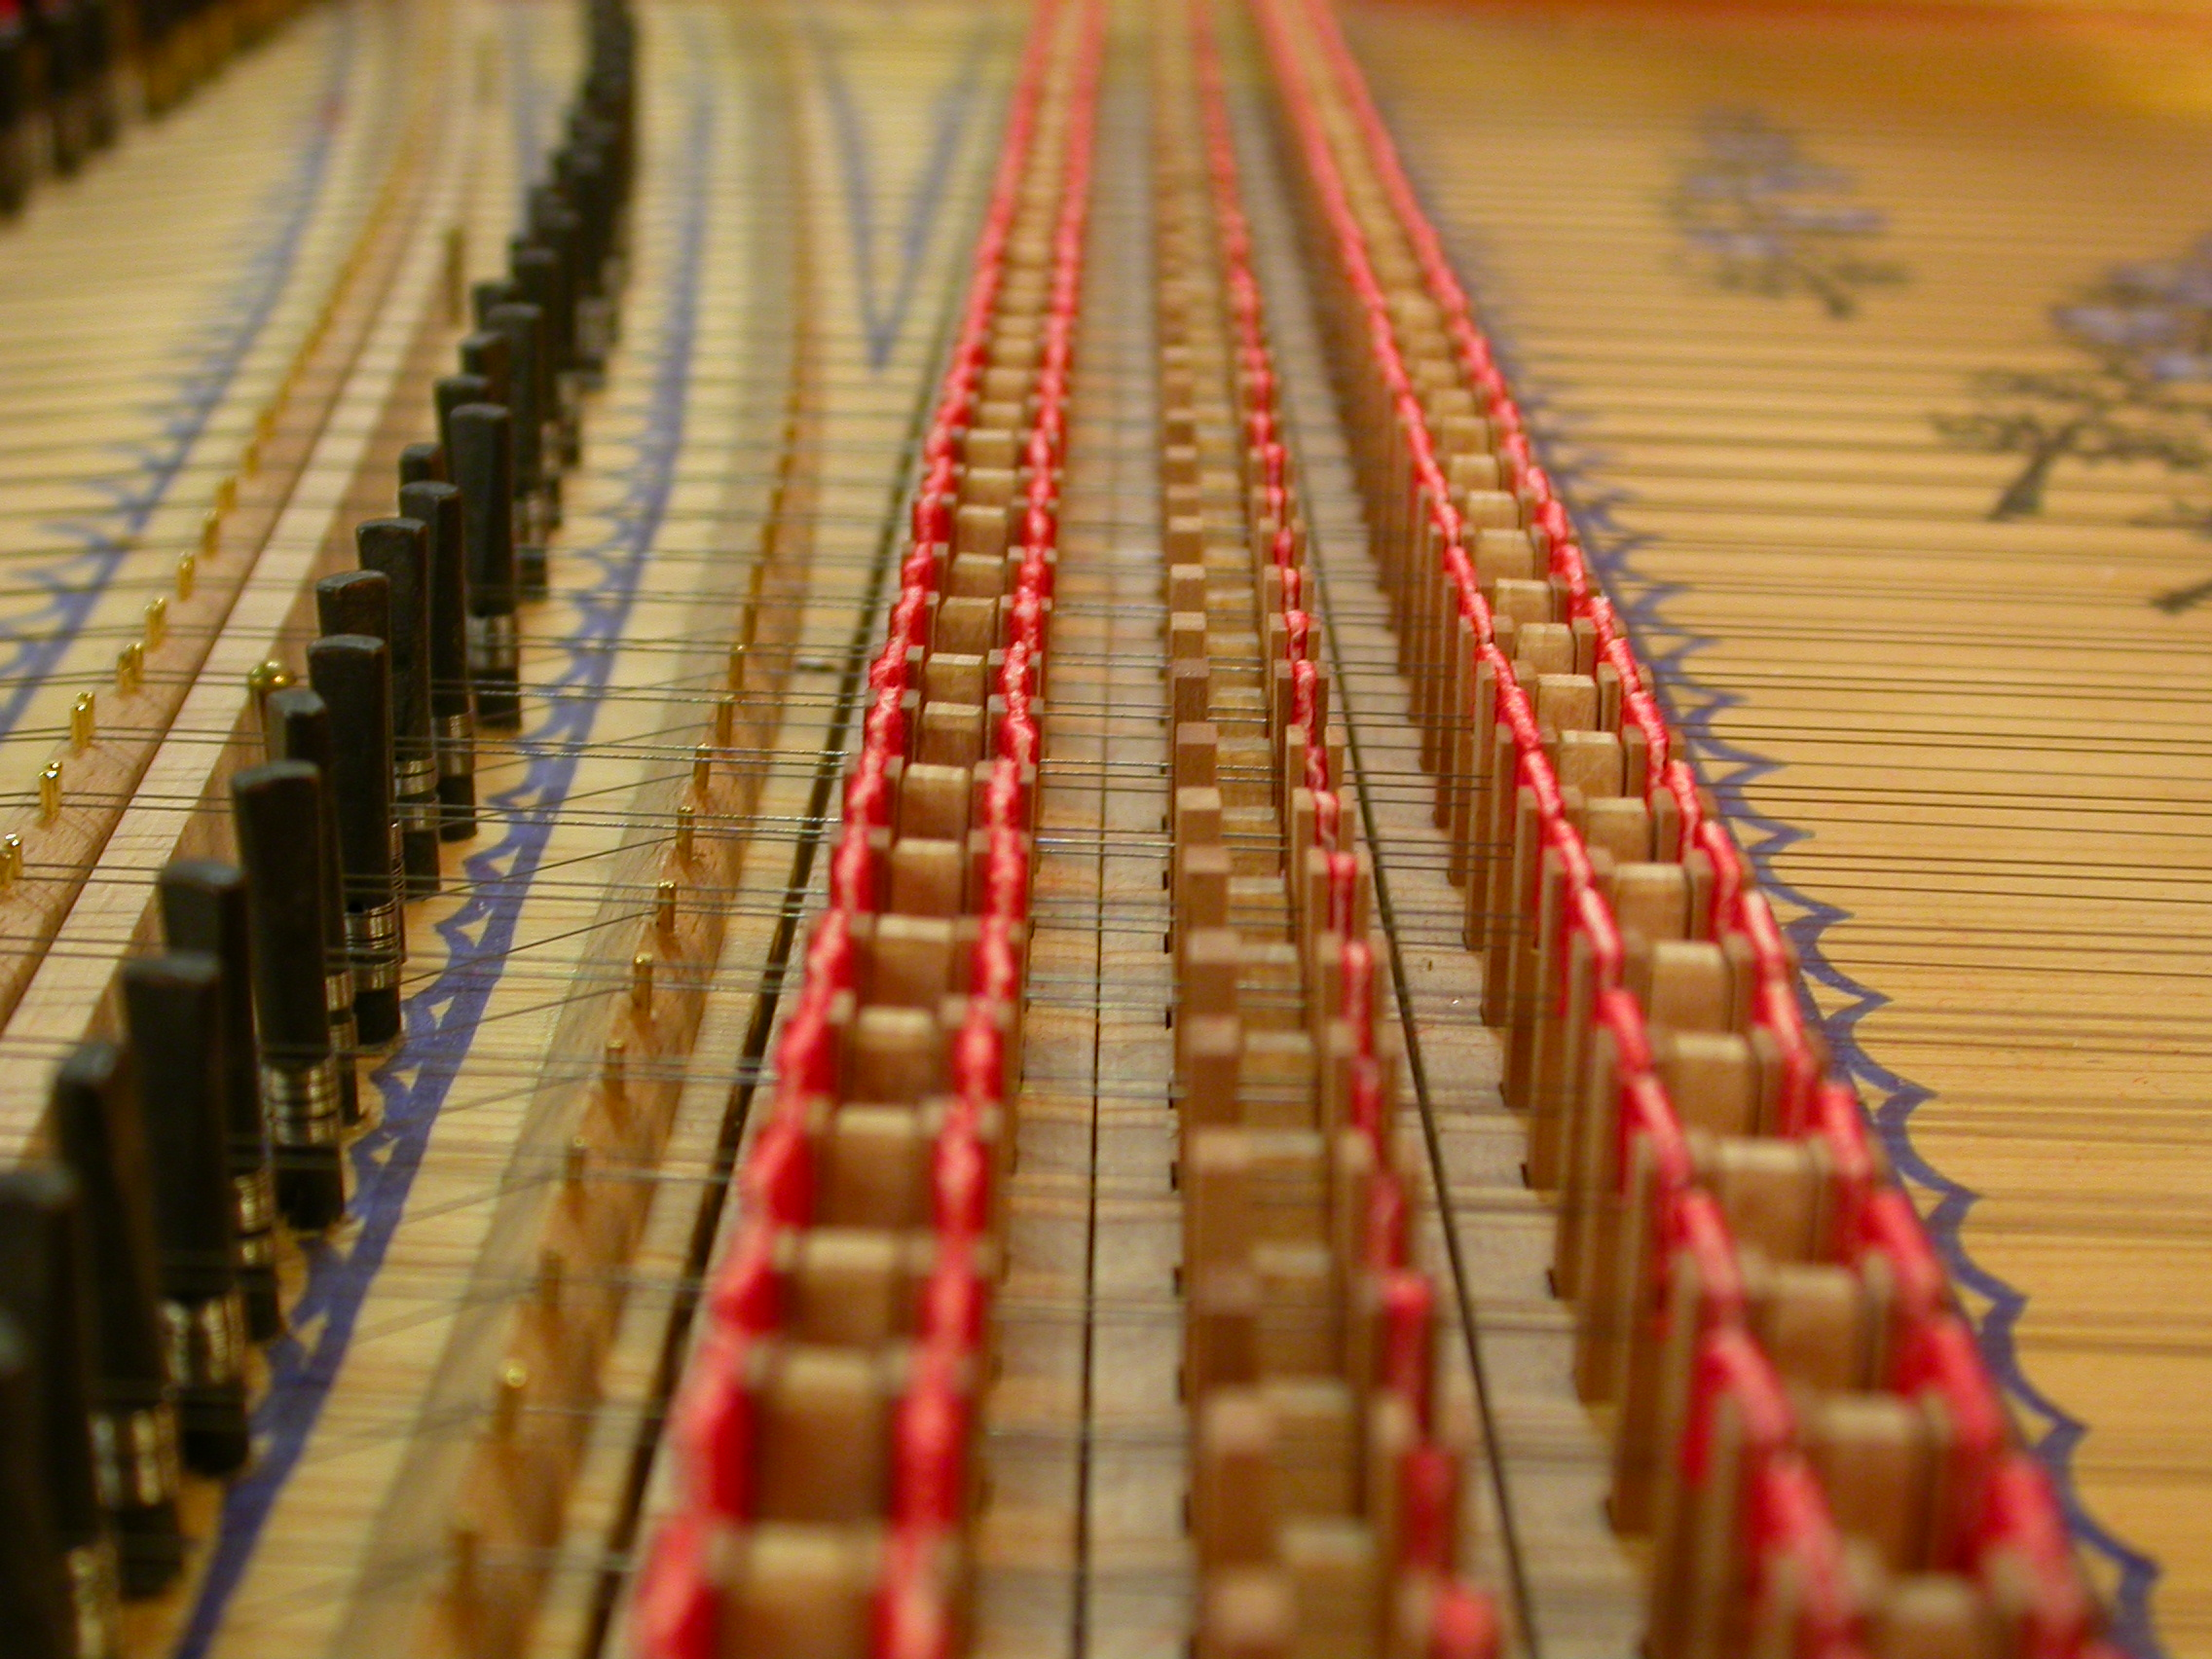 paul inside of piano strings instrument